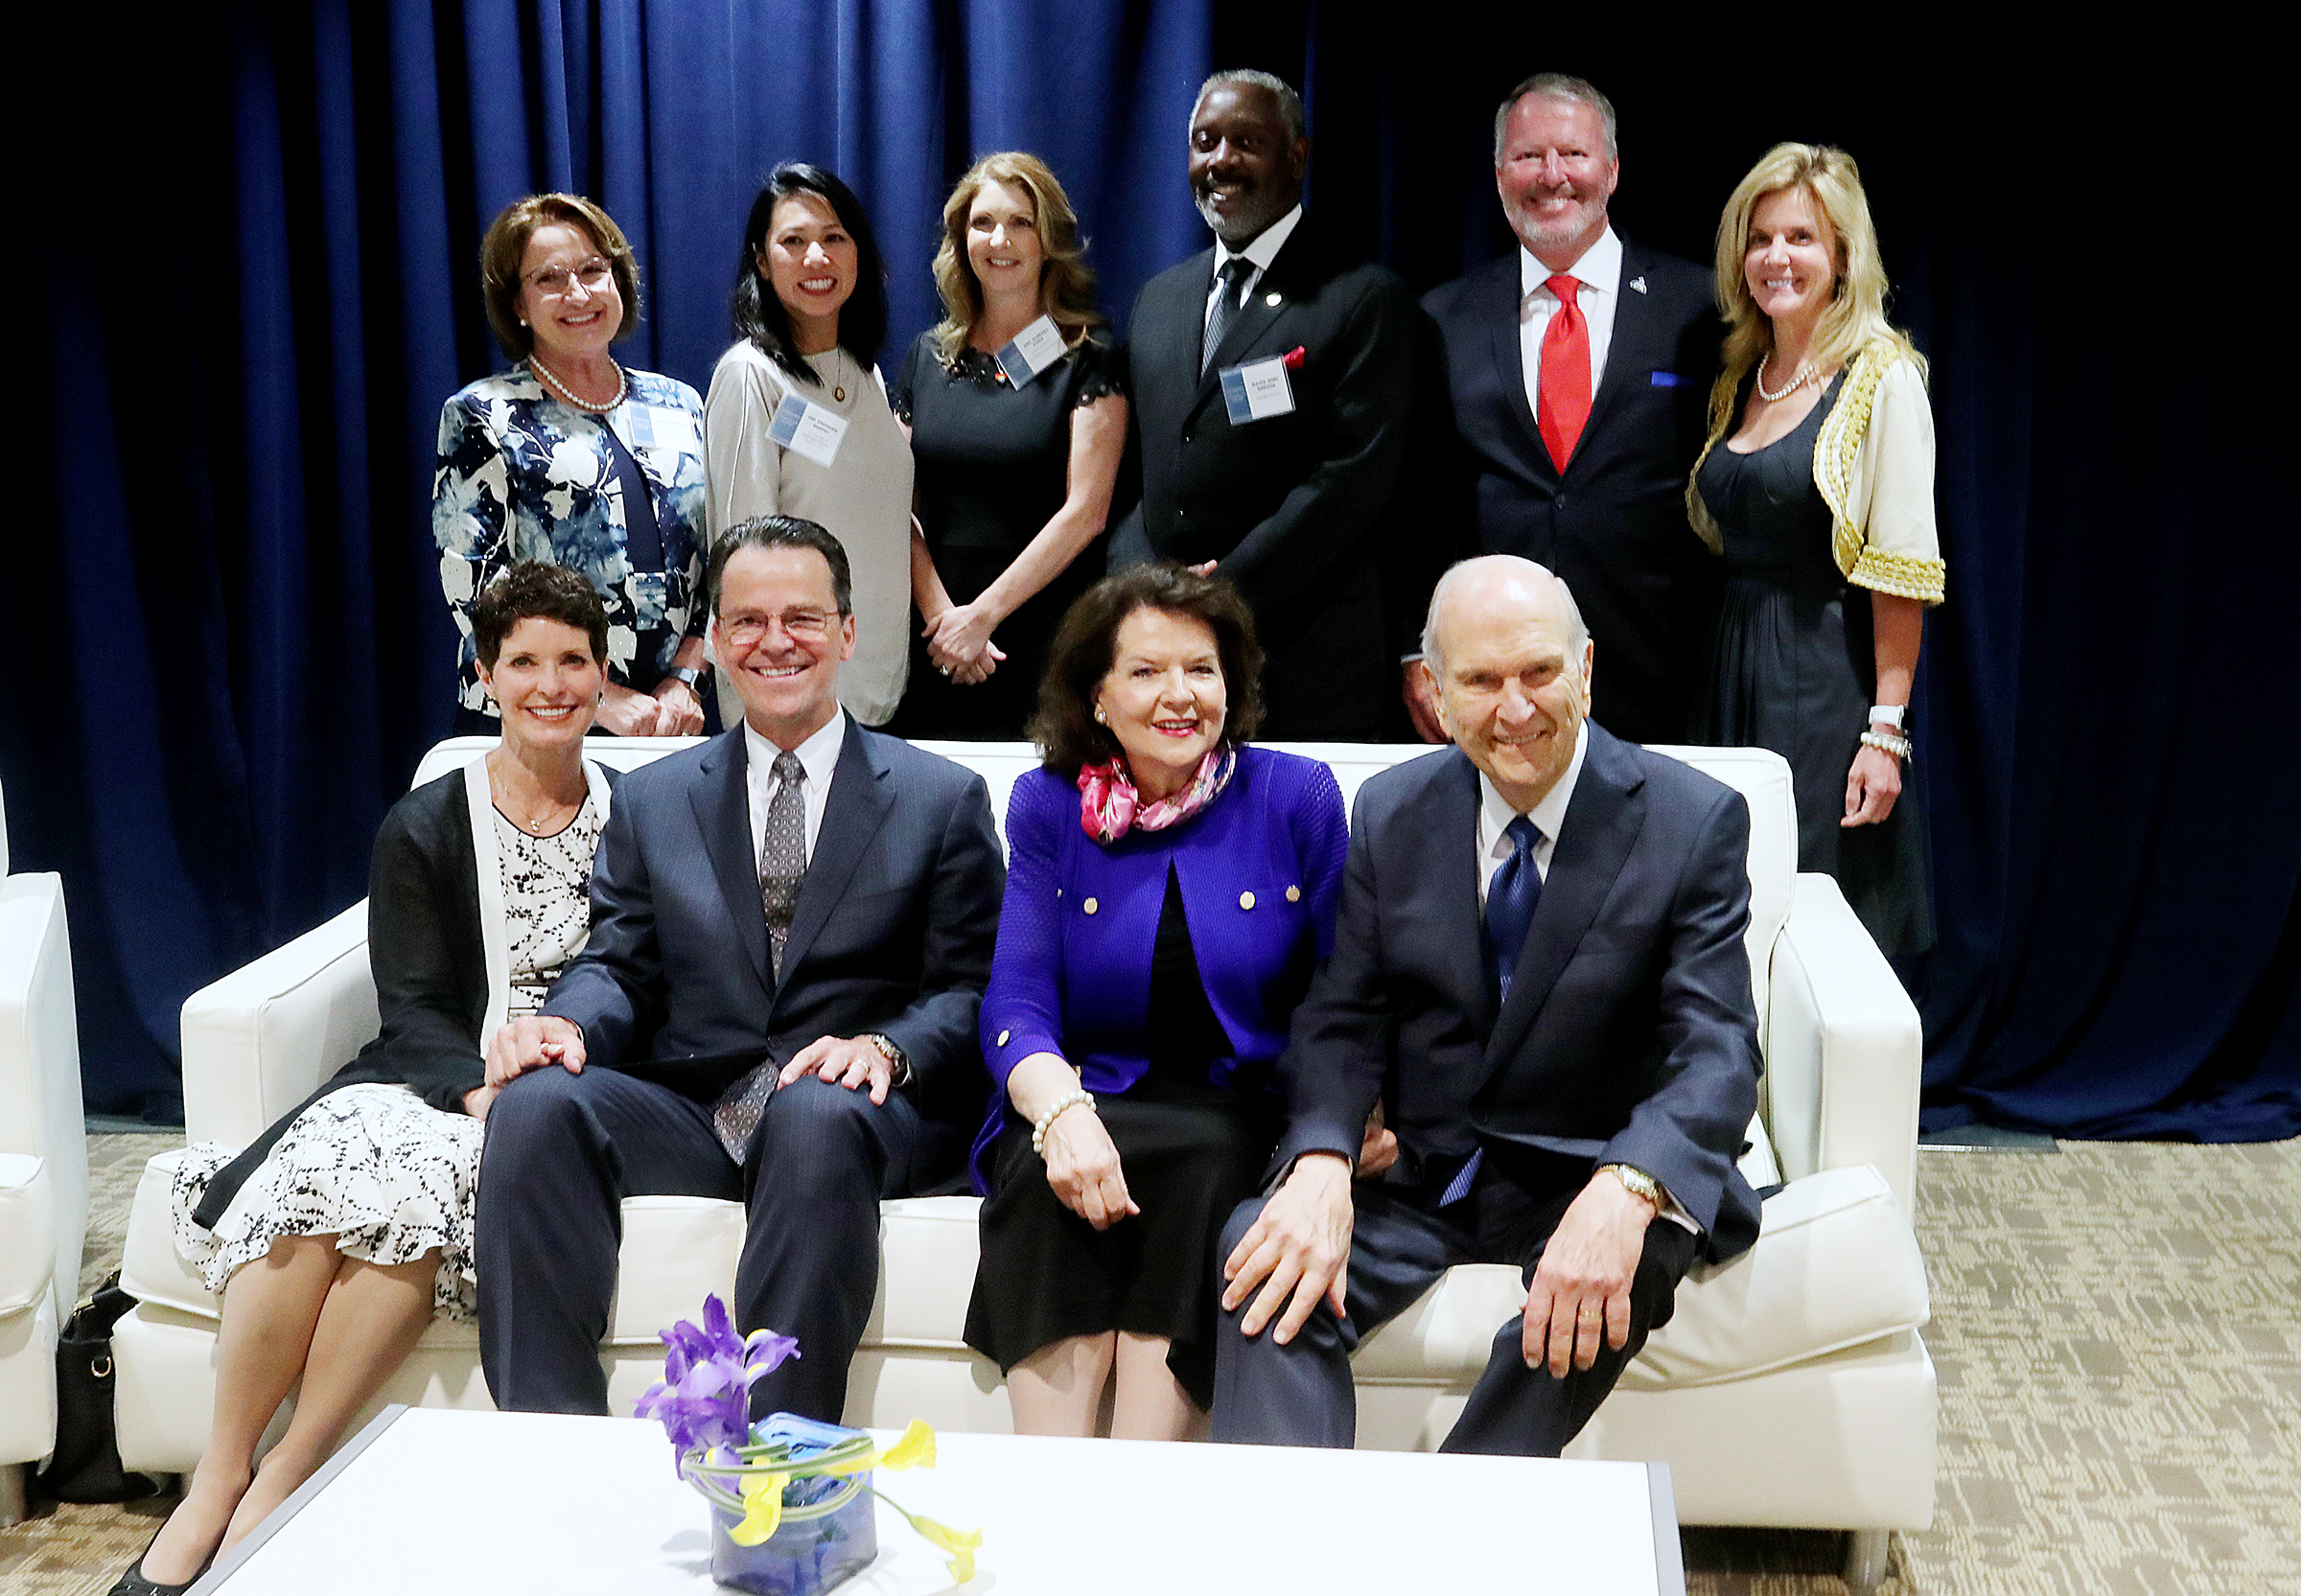 Seated from right to left on the front, President Russell M. Nelson, Sister Wendy Nelson, Elder Shayne M. Bowen and Sister Lynette Bowen pose for a photo with local leaders and VIPs at the Amway Center in Orlando, Florida, prior to a devotional on Sunday, June 9, 2019.